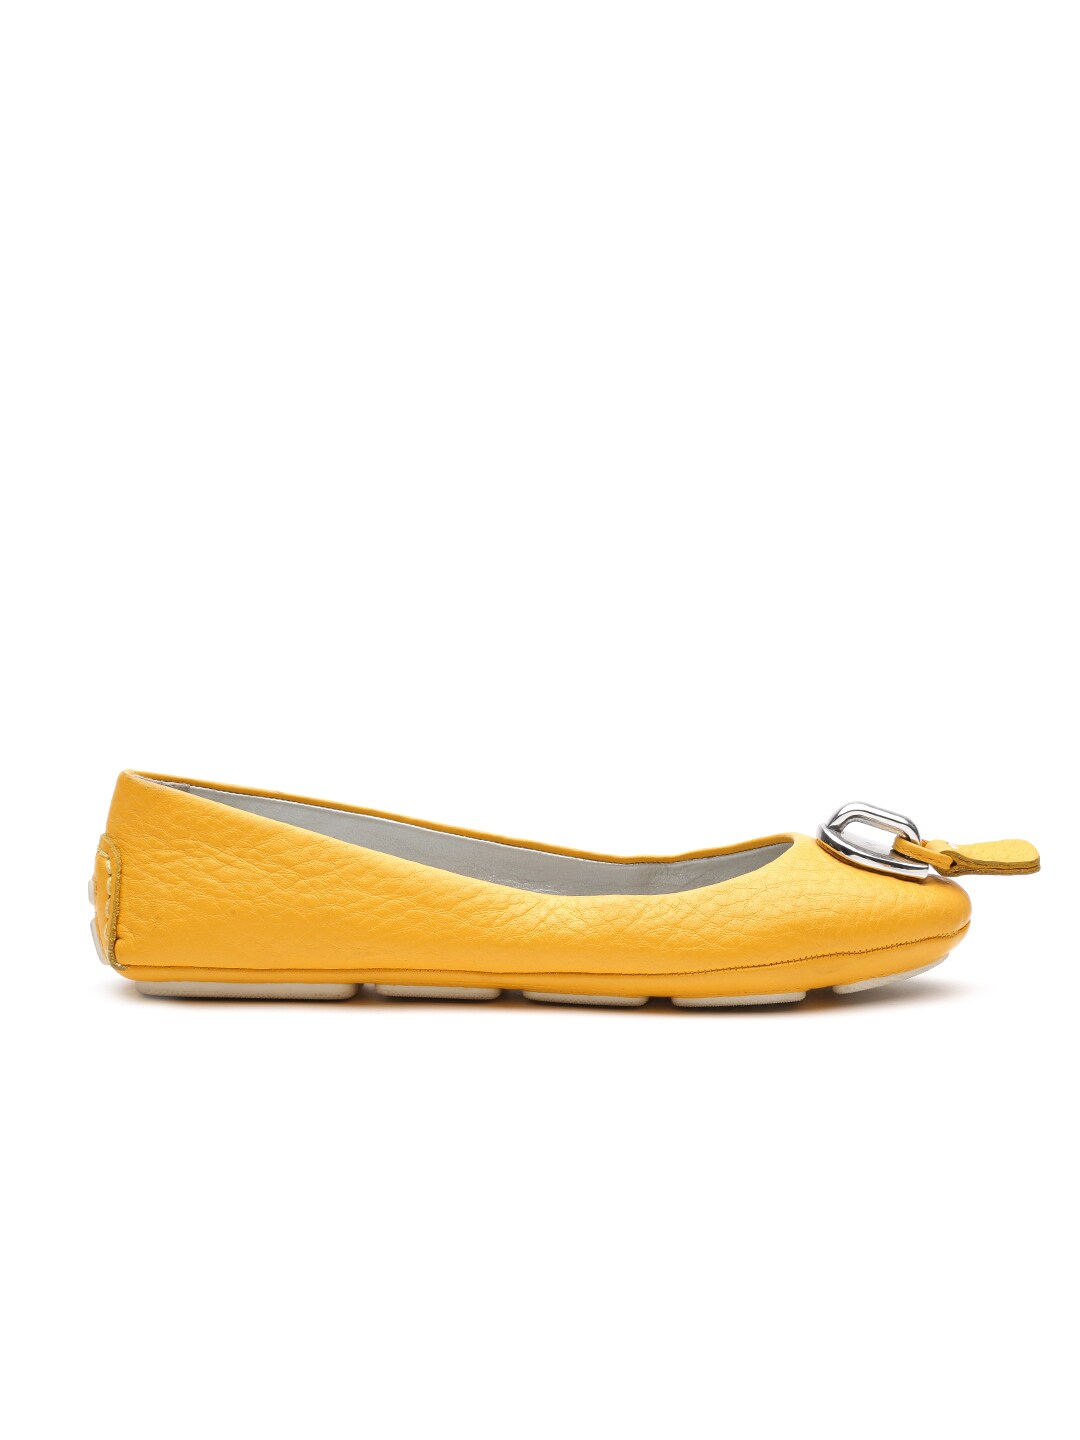 177103a51c52 Casual Shoes For Women - Buy Women s Casual Shoes Online from Myntra